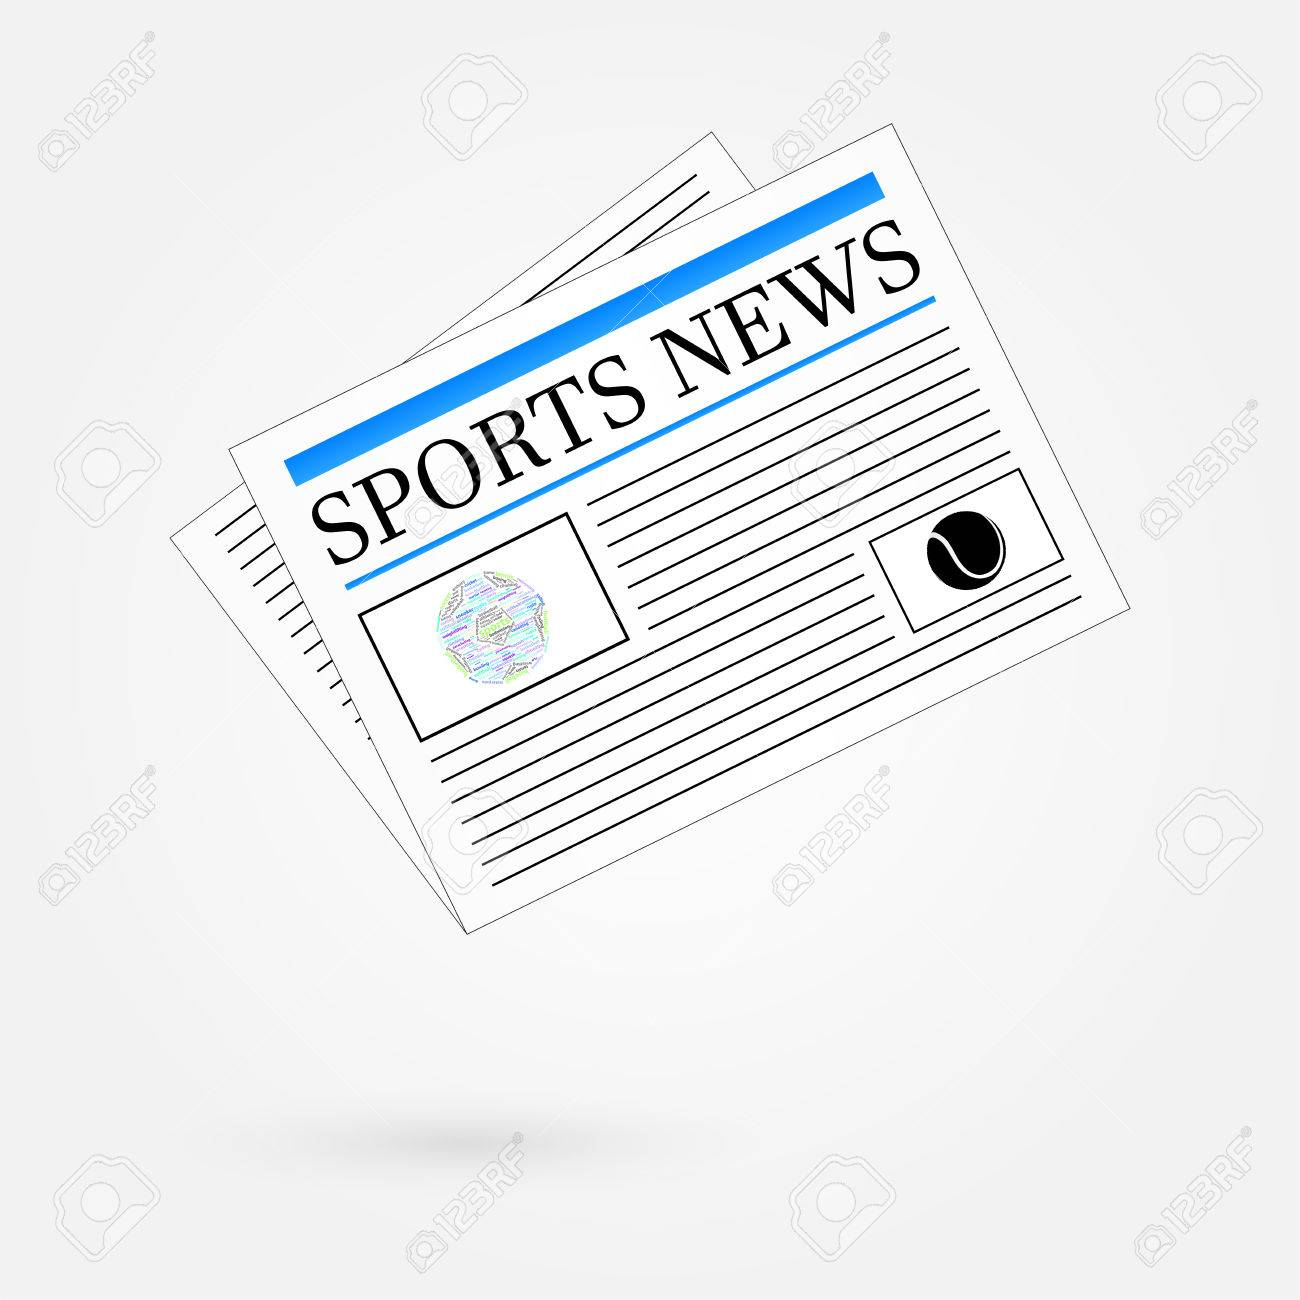 Sports News Newspaper Headline Front Page Stock Vector - 23907967